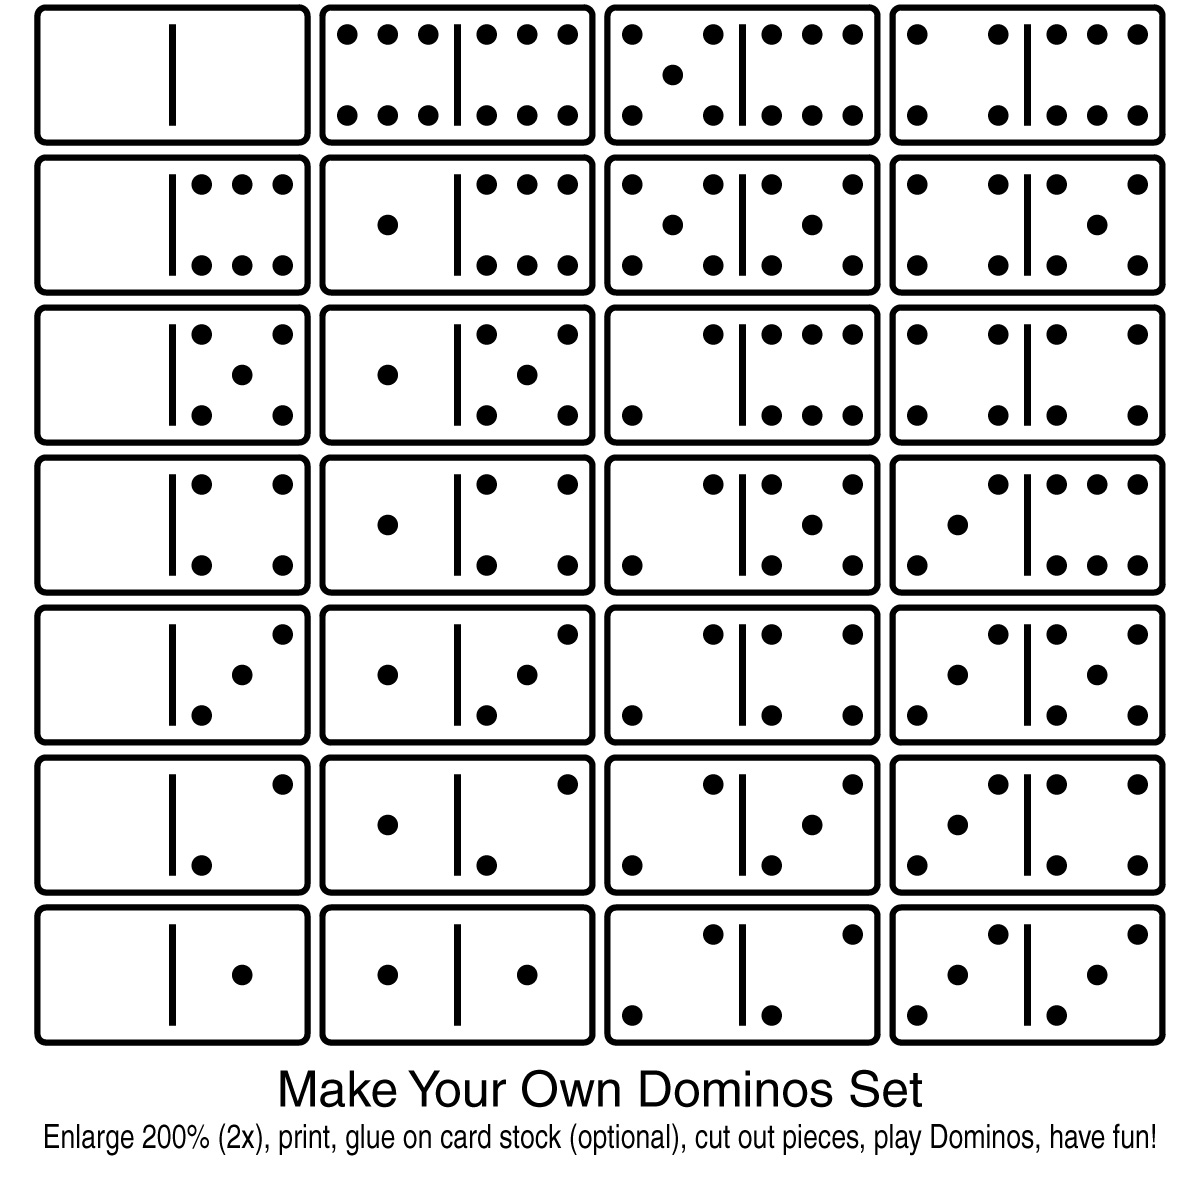 Dominoes Tracker Using Html Css And Javascript